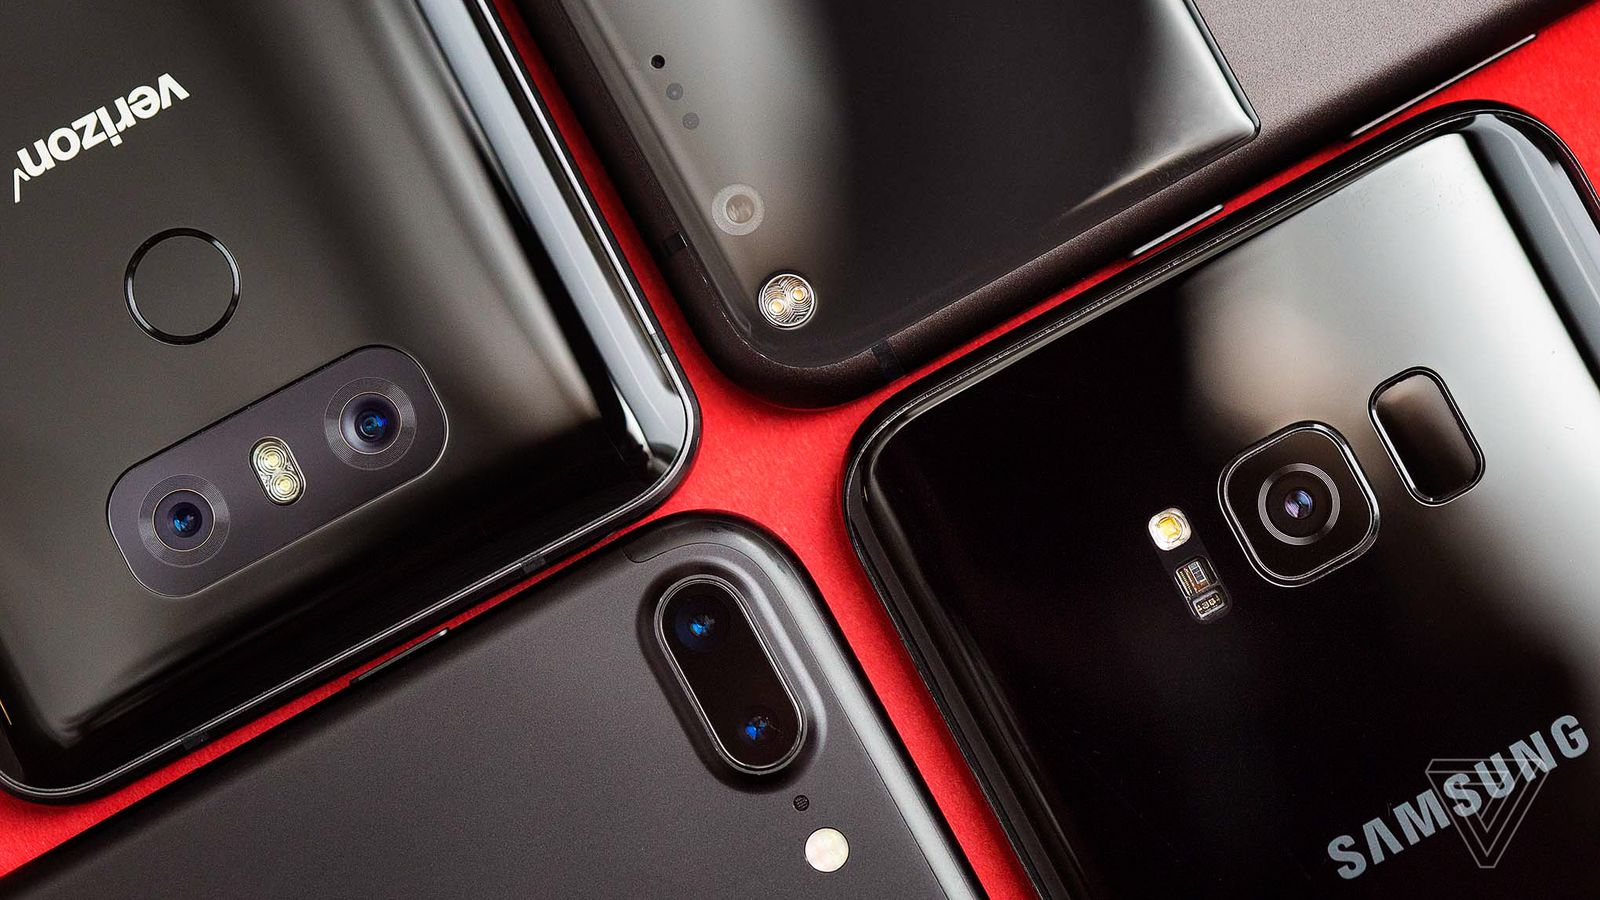 Smartphone camera shootout: Galaxy S8 vs. iPhone 7, Google Pixel, and LG G6